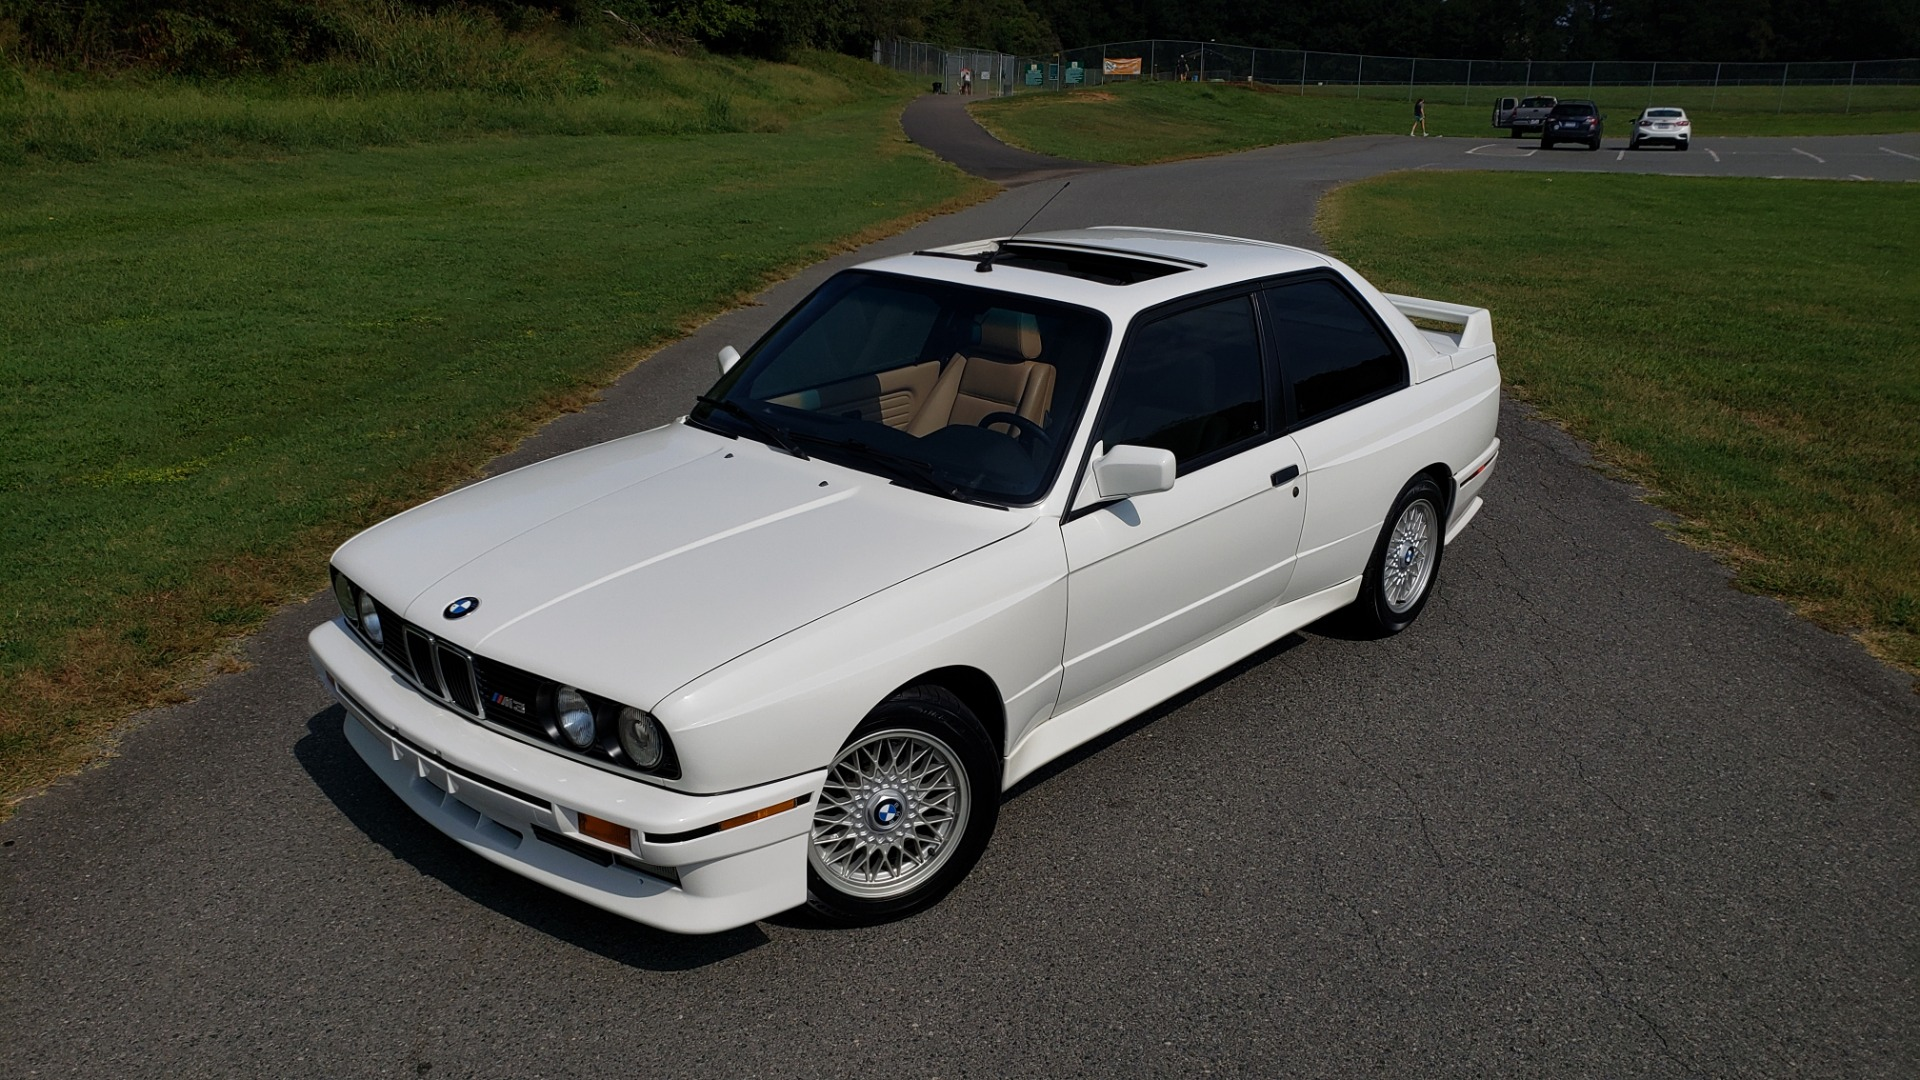 Used 1989 BMW M3 COUPE 2DR / 5-SPEED MAN / LOW MILES / SUPER CLEAN for sale Sold at Formula Imports in Charlotte NC 28227 25